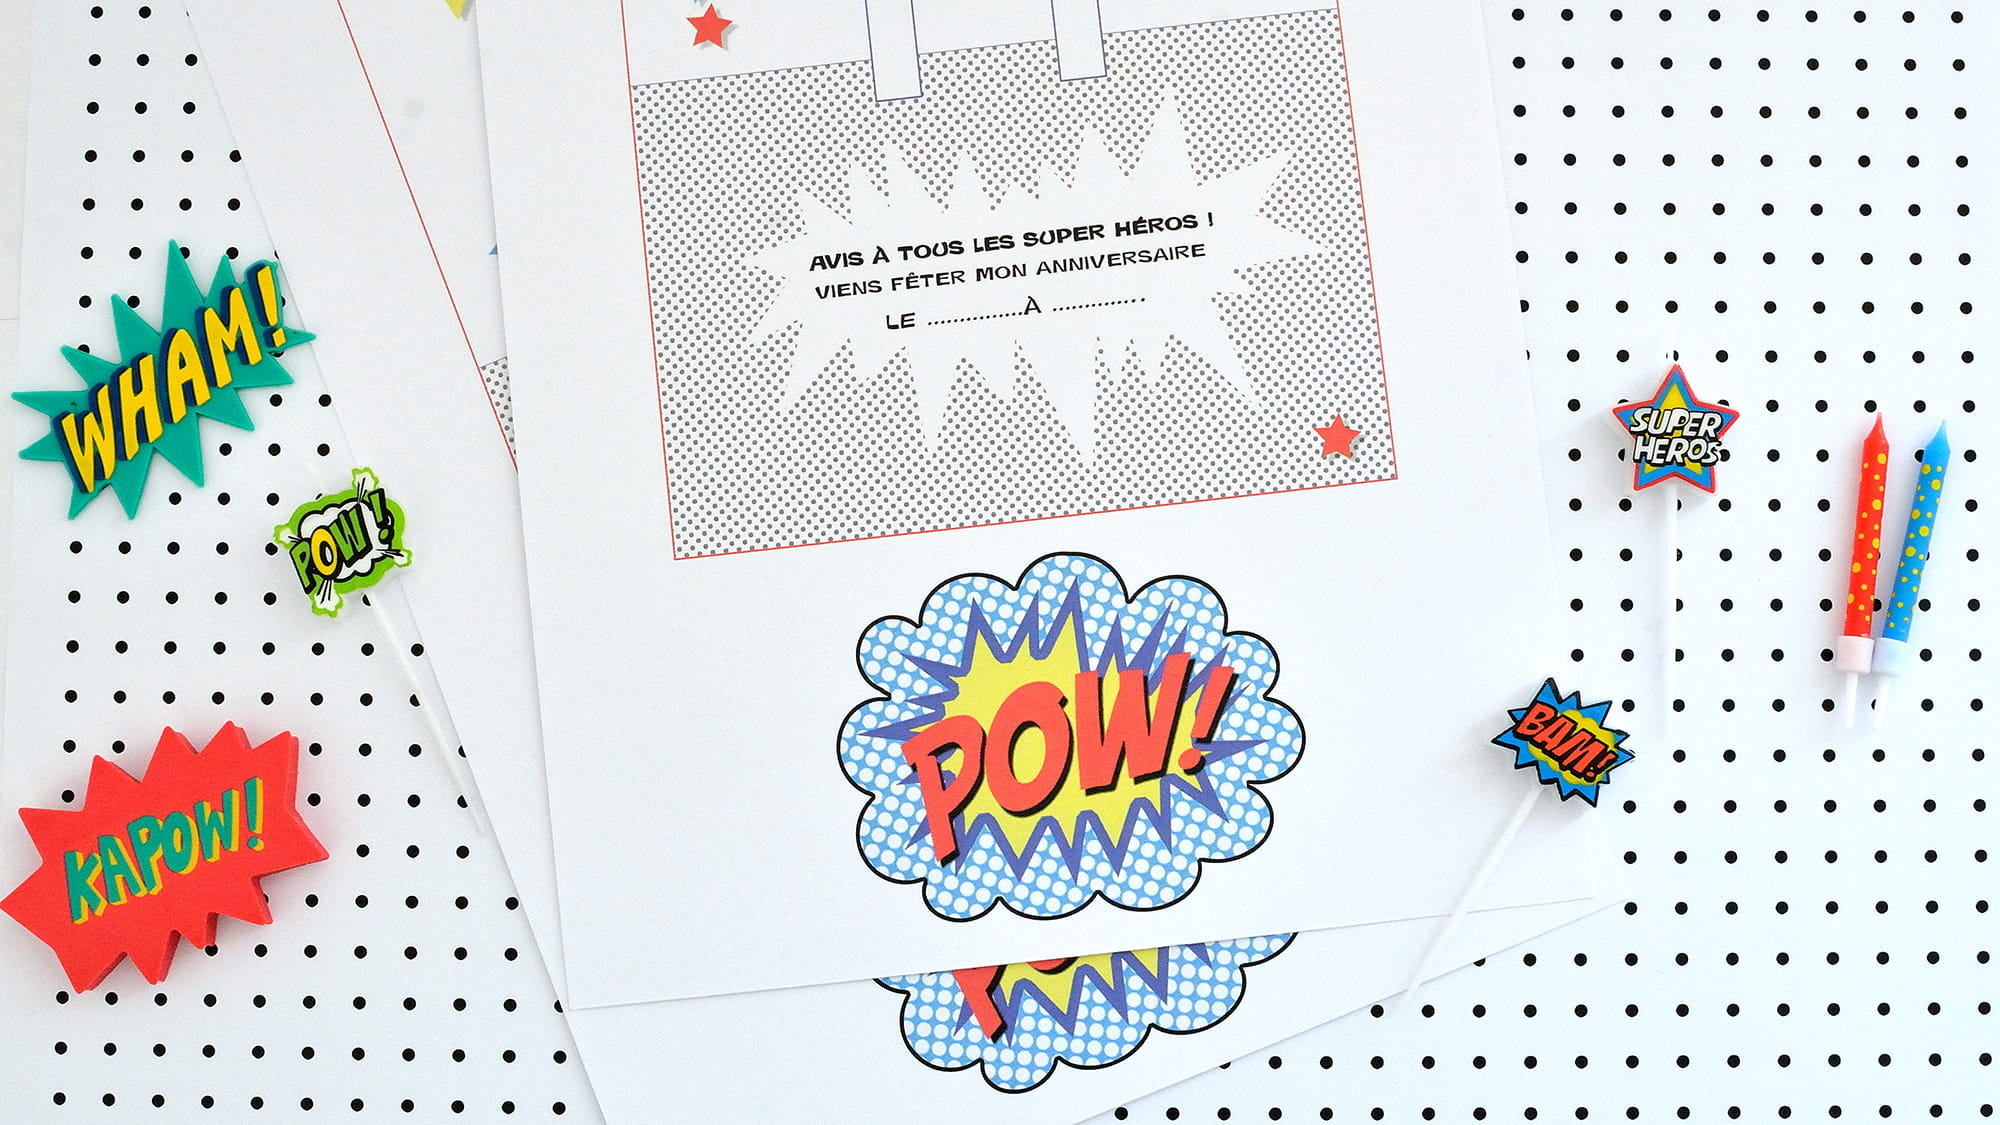 invitations_super_heros_1_2000x1125